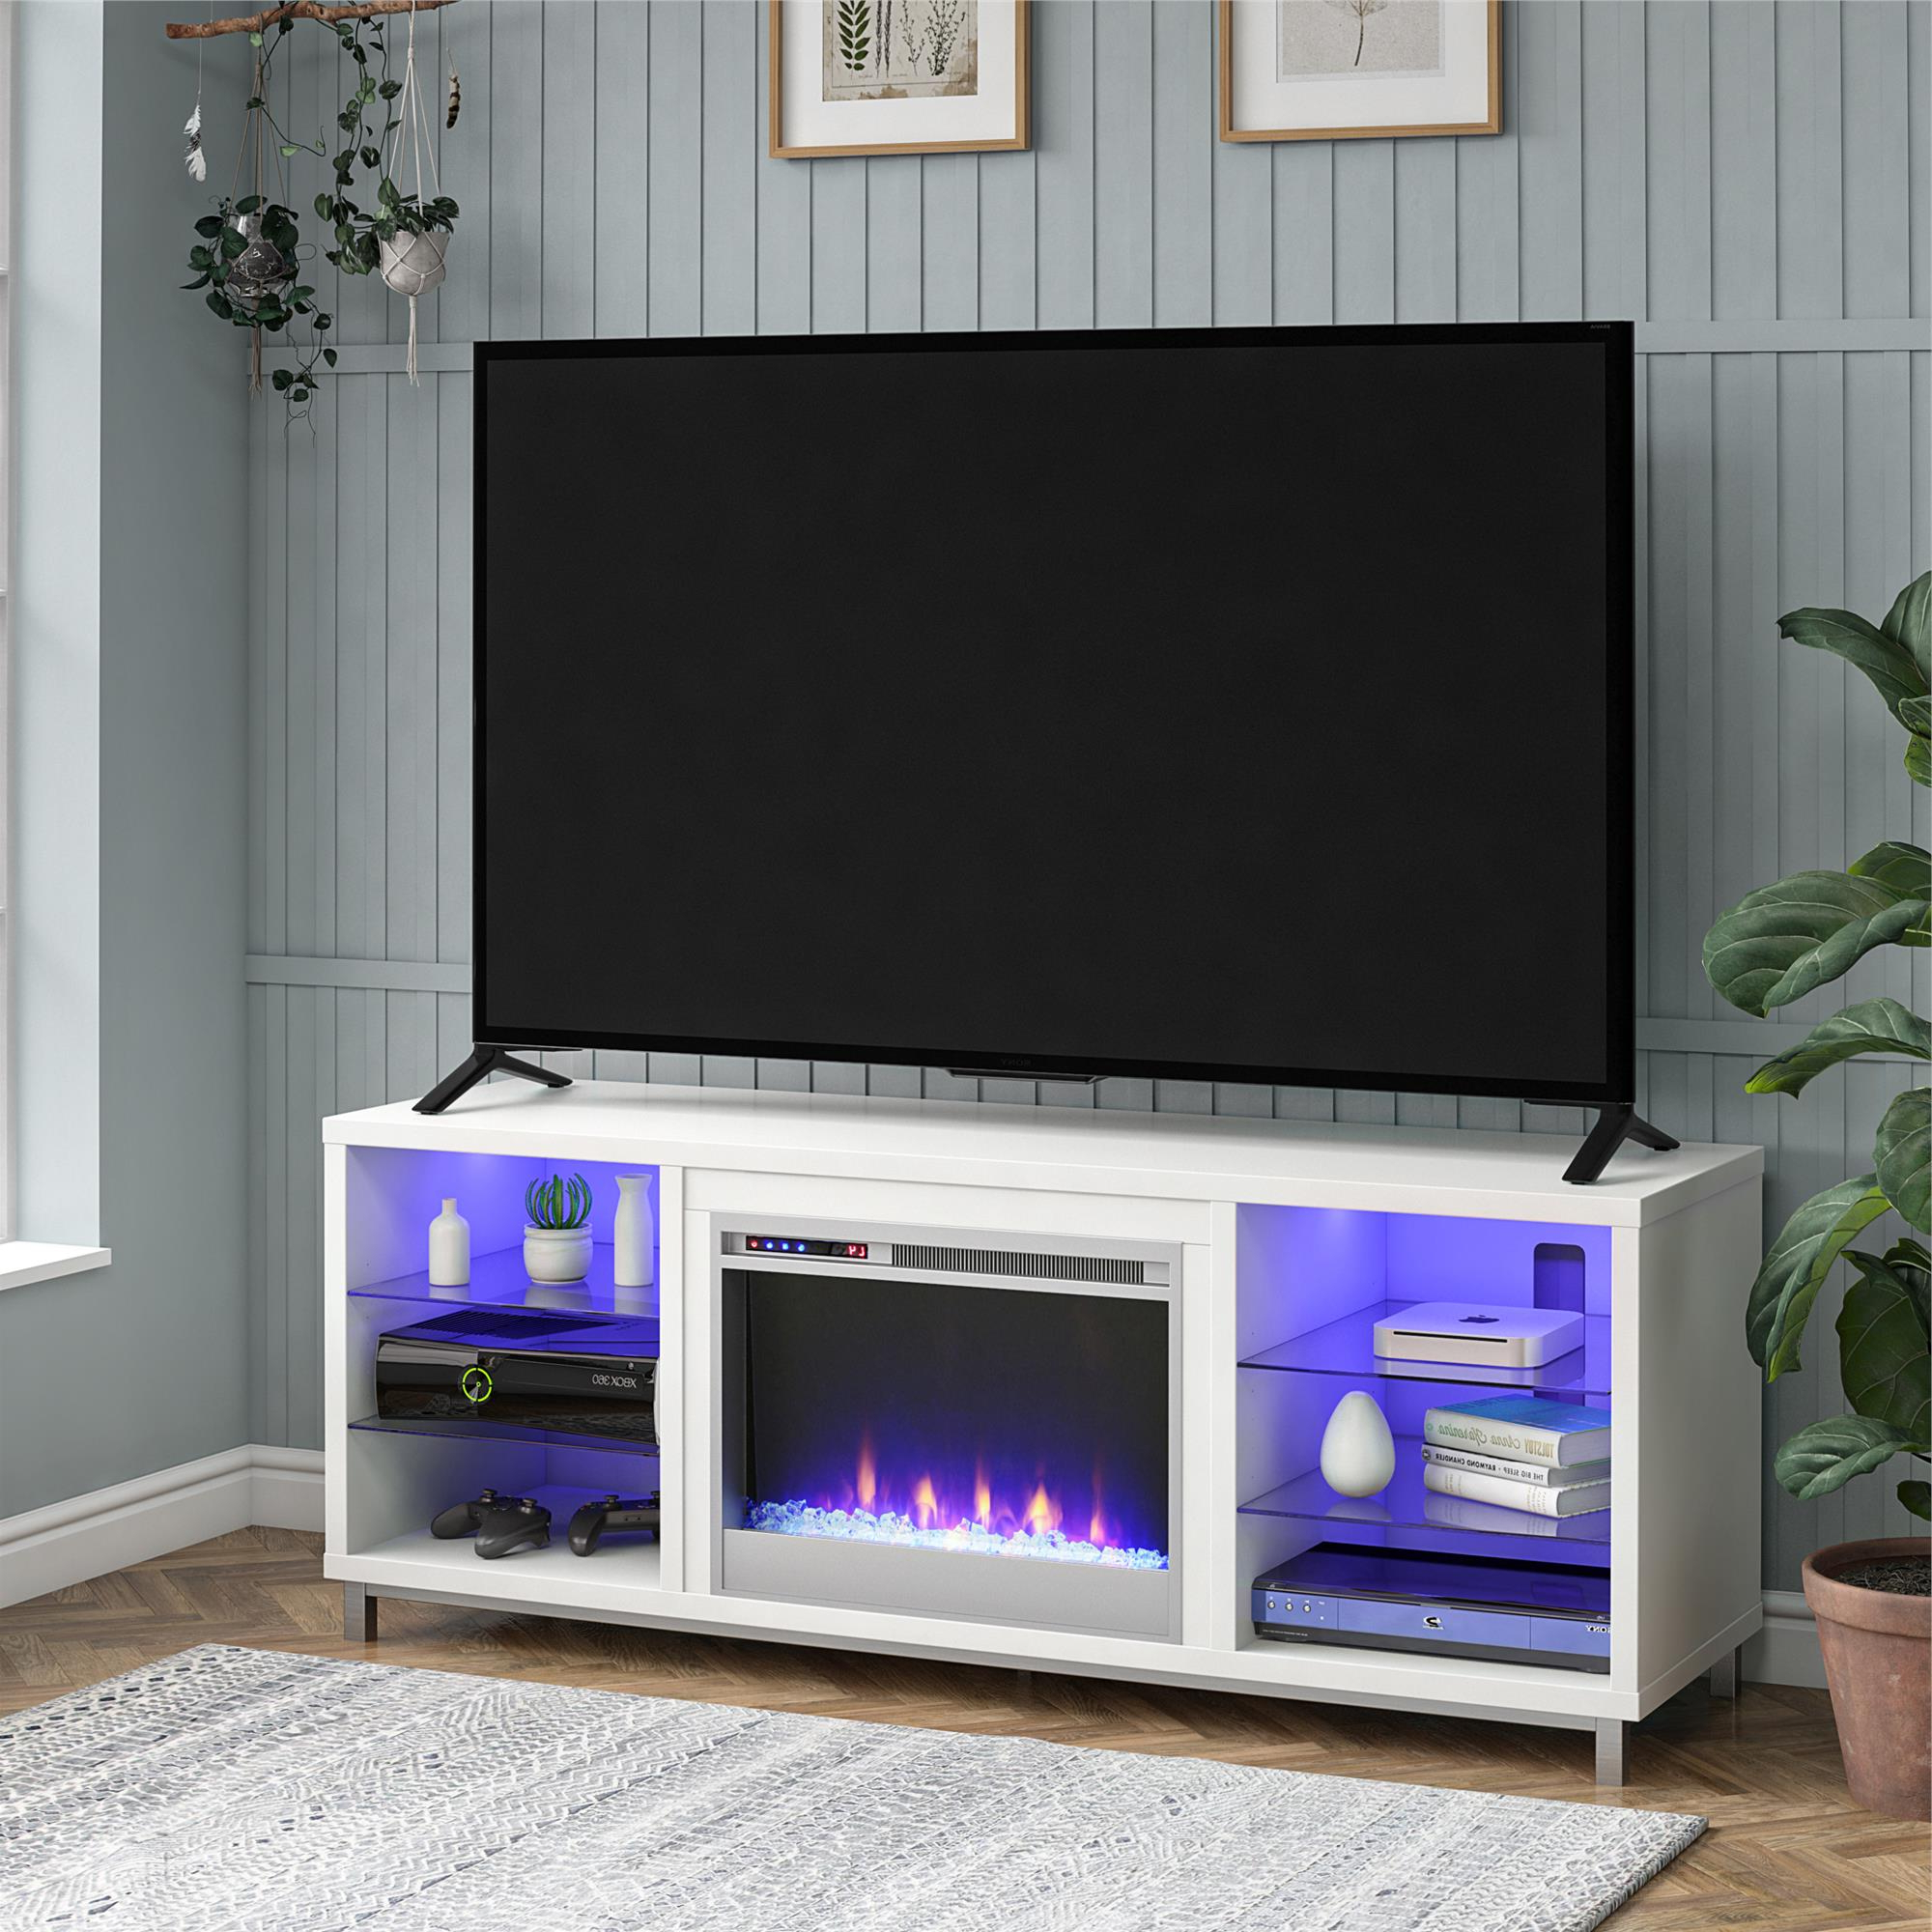 """Ameriwood Home Lumina Fireplace Tv Stand For Tvs Up To 70 Intended For Preferred Kinsella Tv Stands For Tvs Up To 70"""" (View 3 of 25)"""